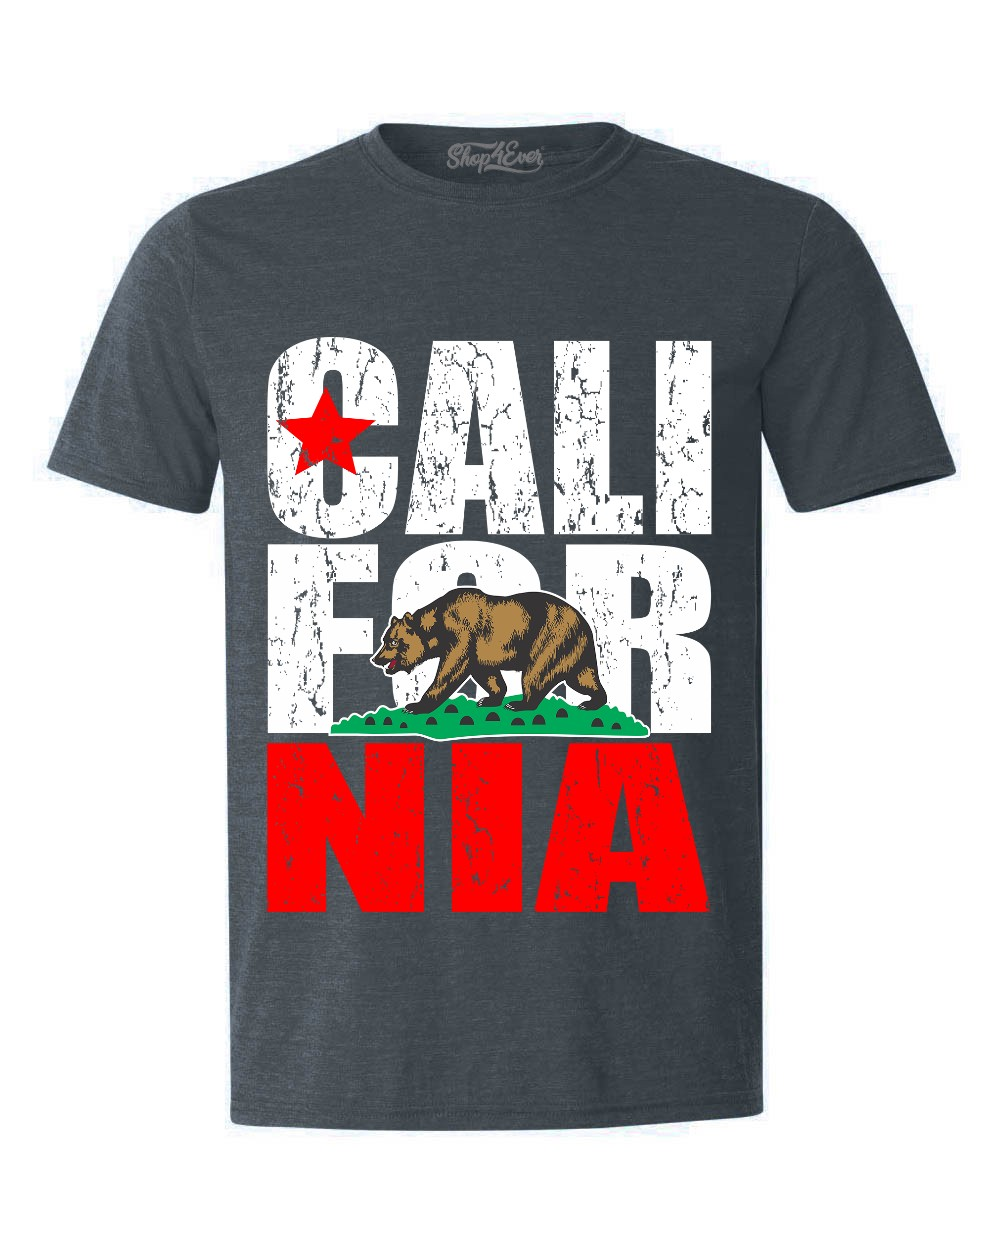 T-Shirt Casual Novelty Welcome to California Bear t Shirts Girls Tops ComfortSoft